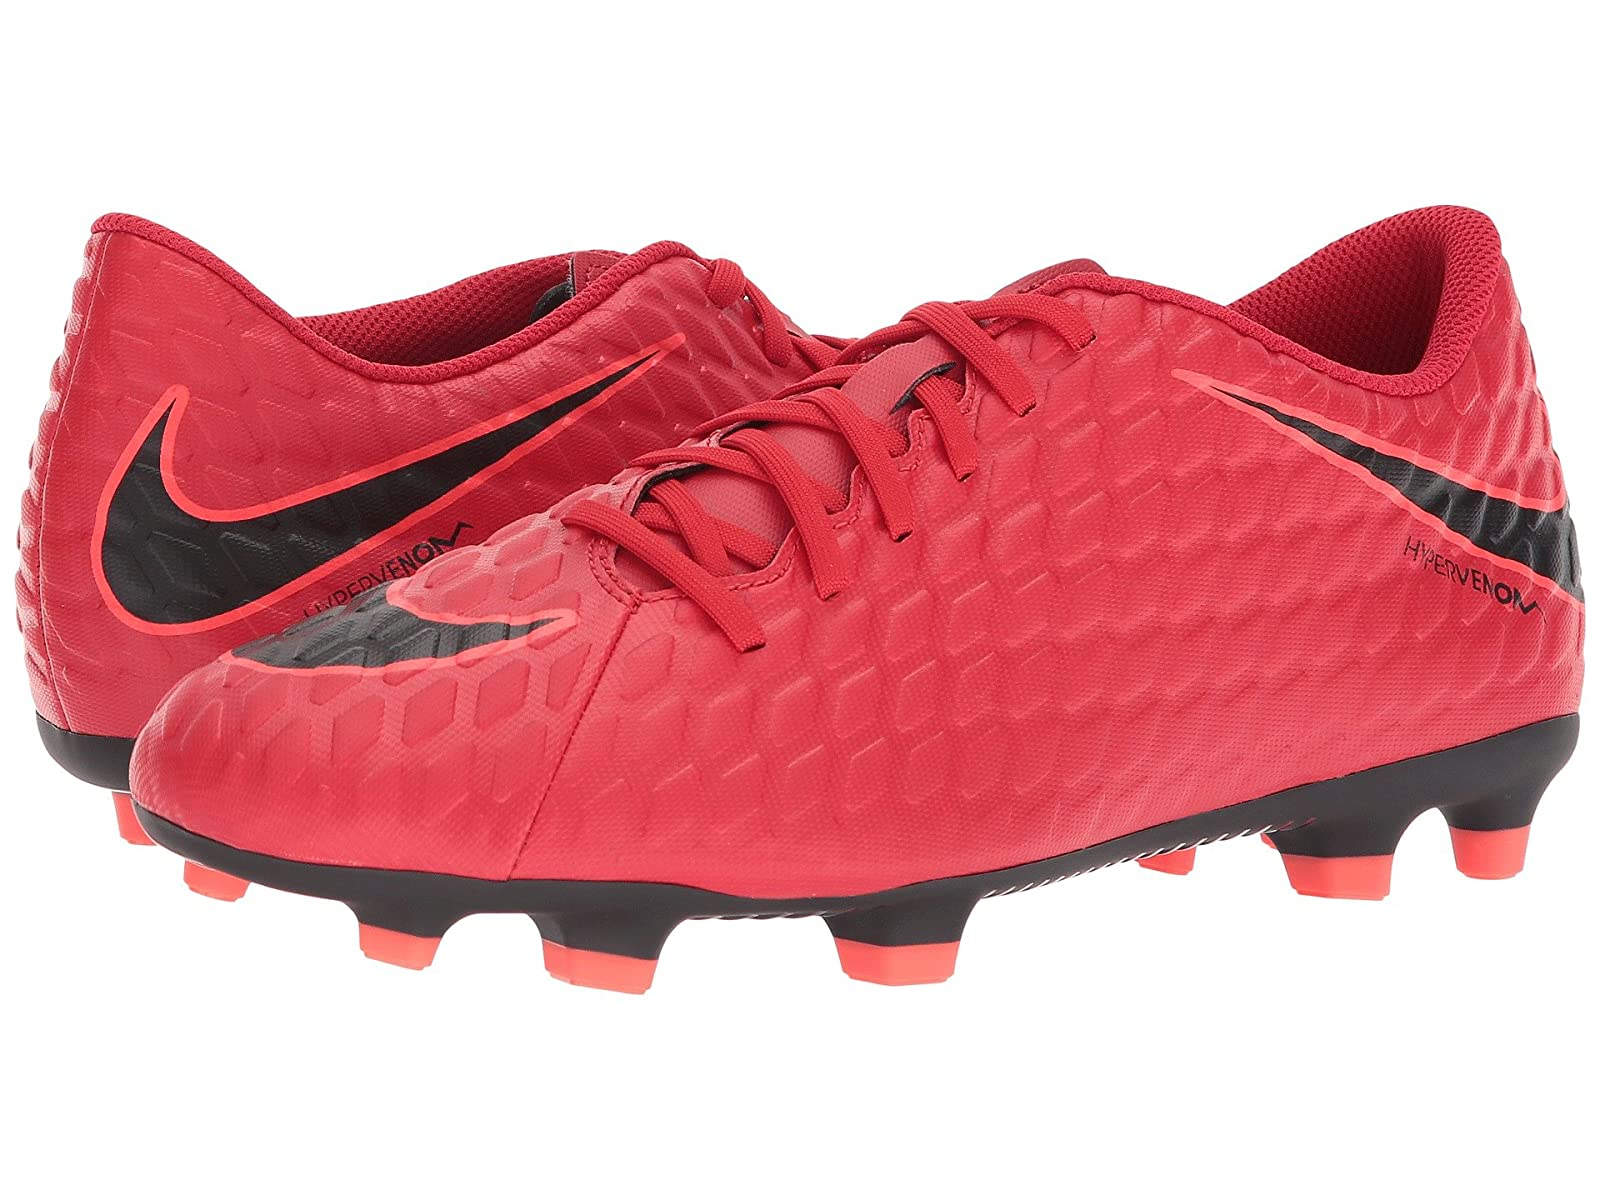 Nike Hypervenom Phade II FGCheap and distinctive eye-catching shoes